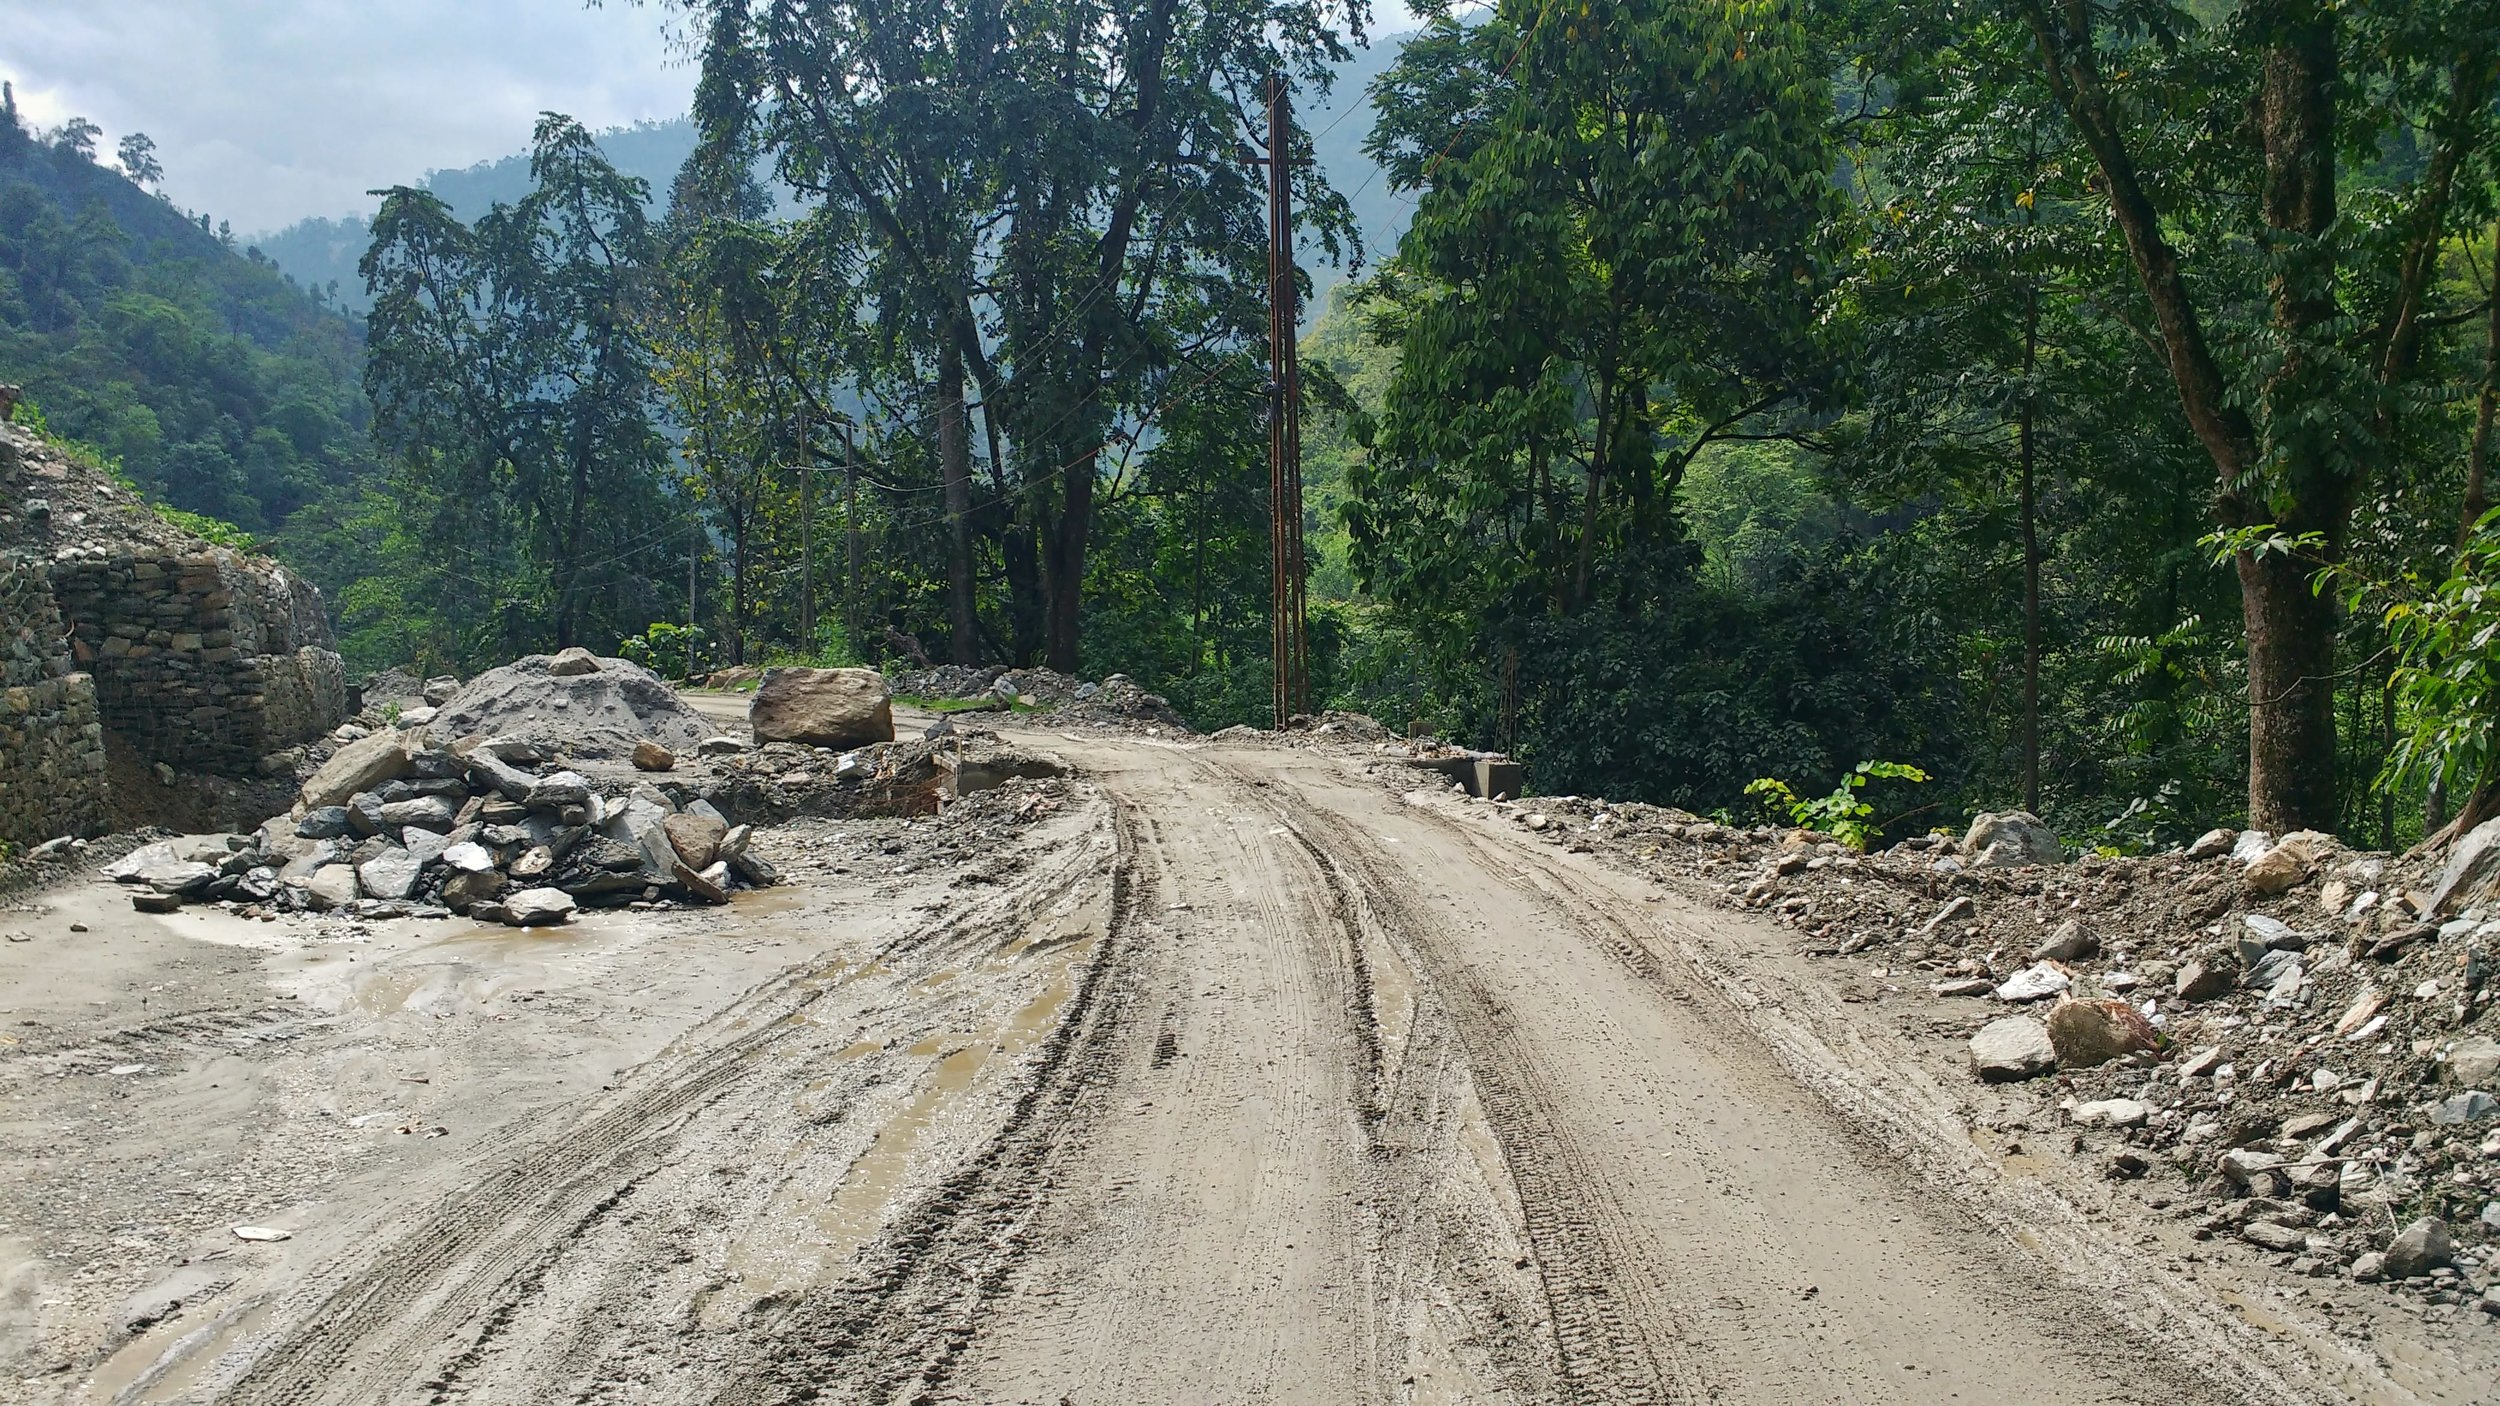 Road conditions are not the best in Sikkim, this will increase your travel time while backpacking in Sikkim, India.